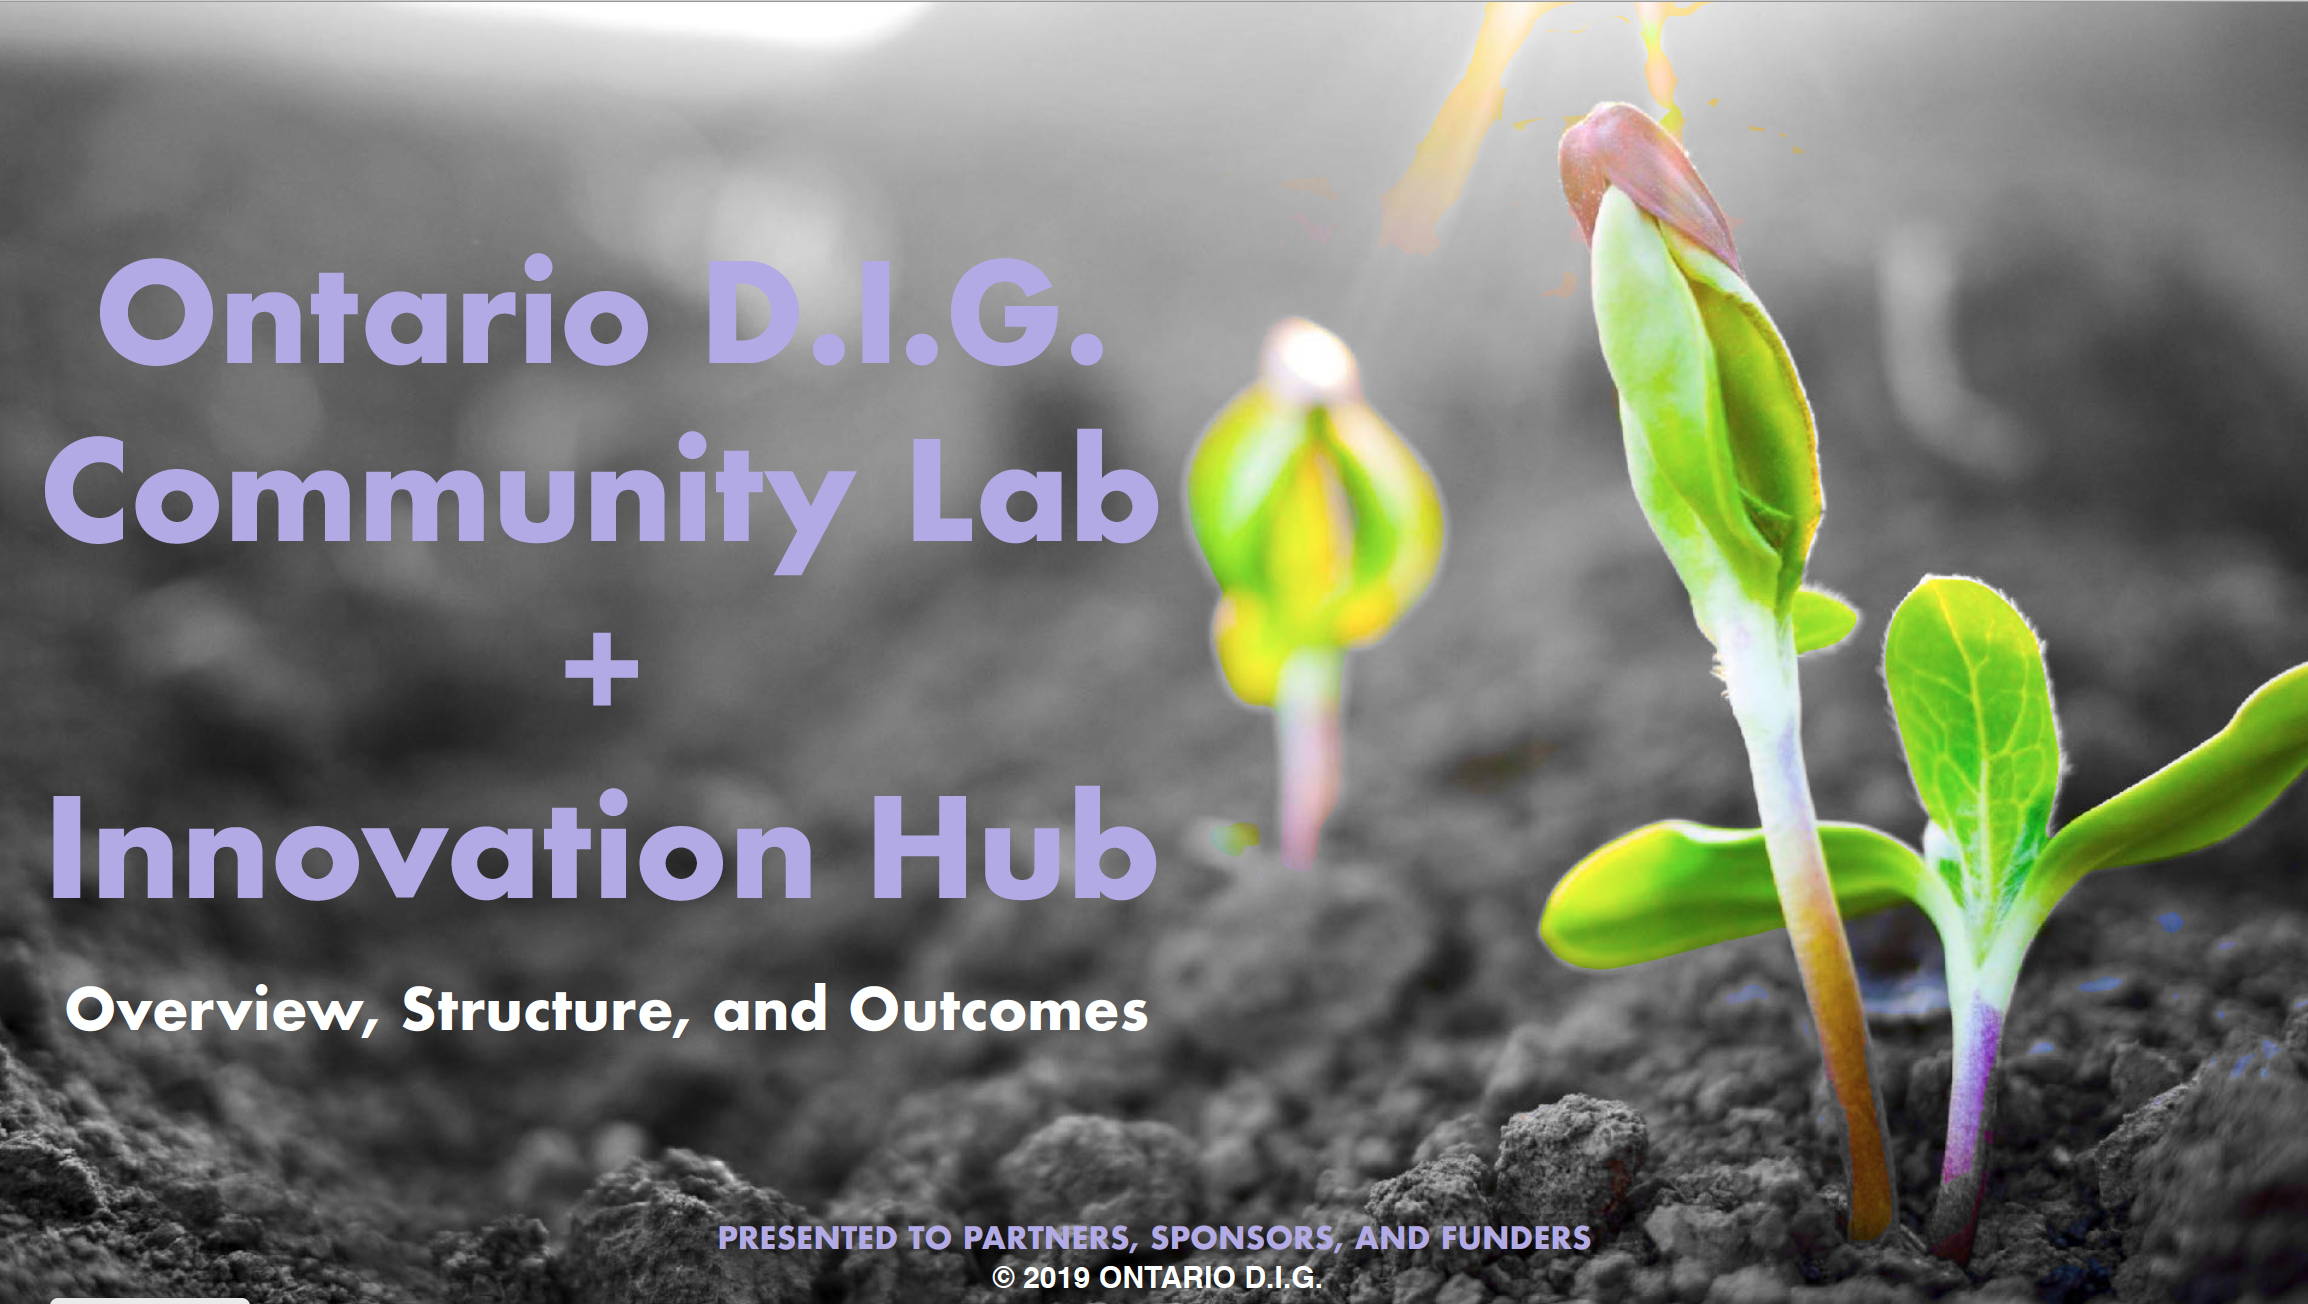 Click on the image to learn about the Ontario D.I.G. project